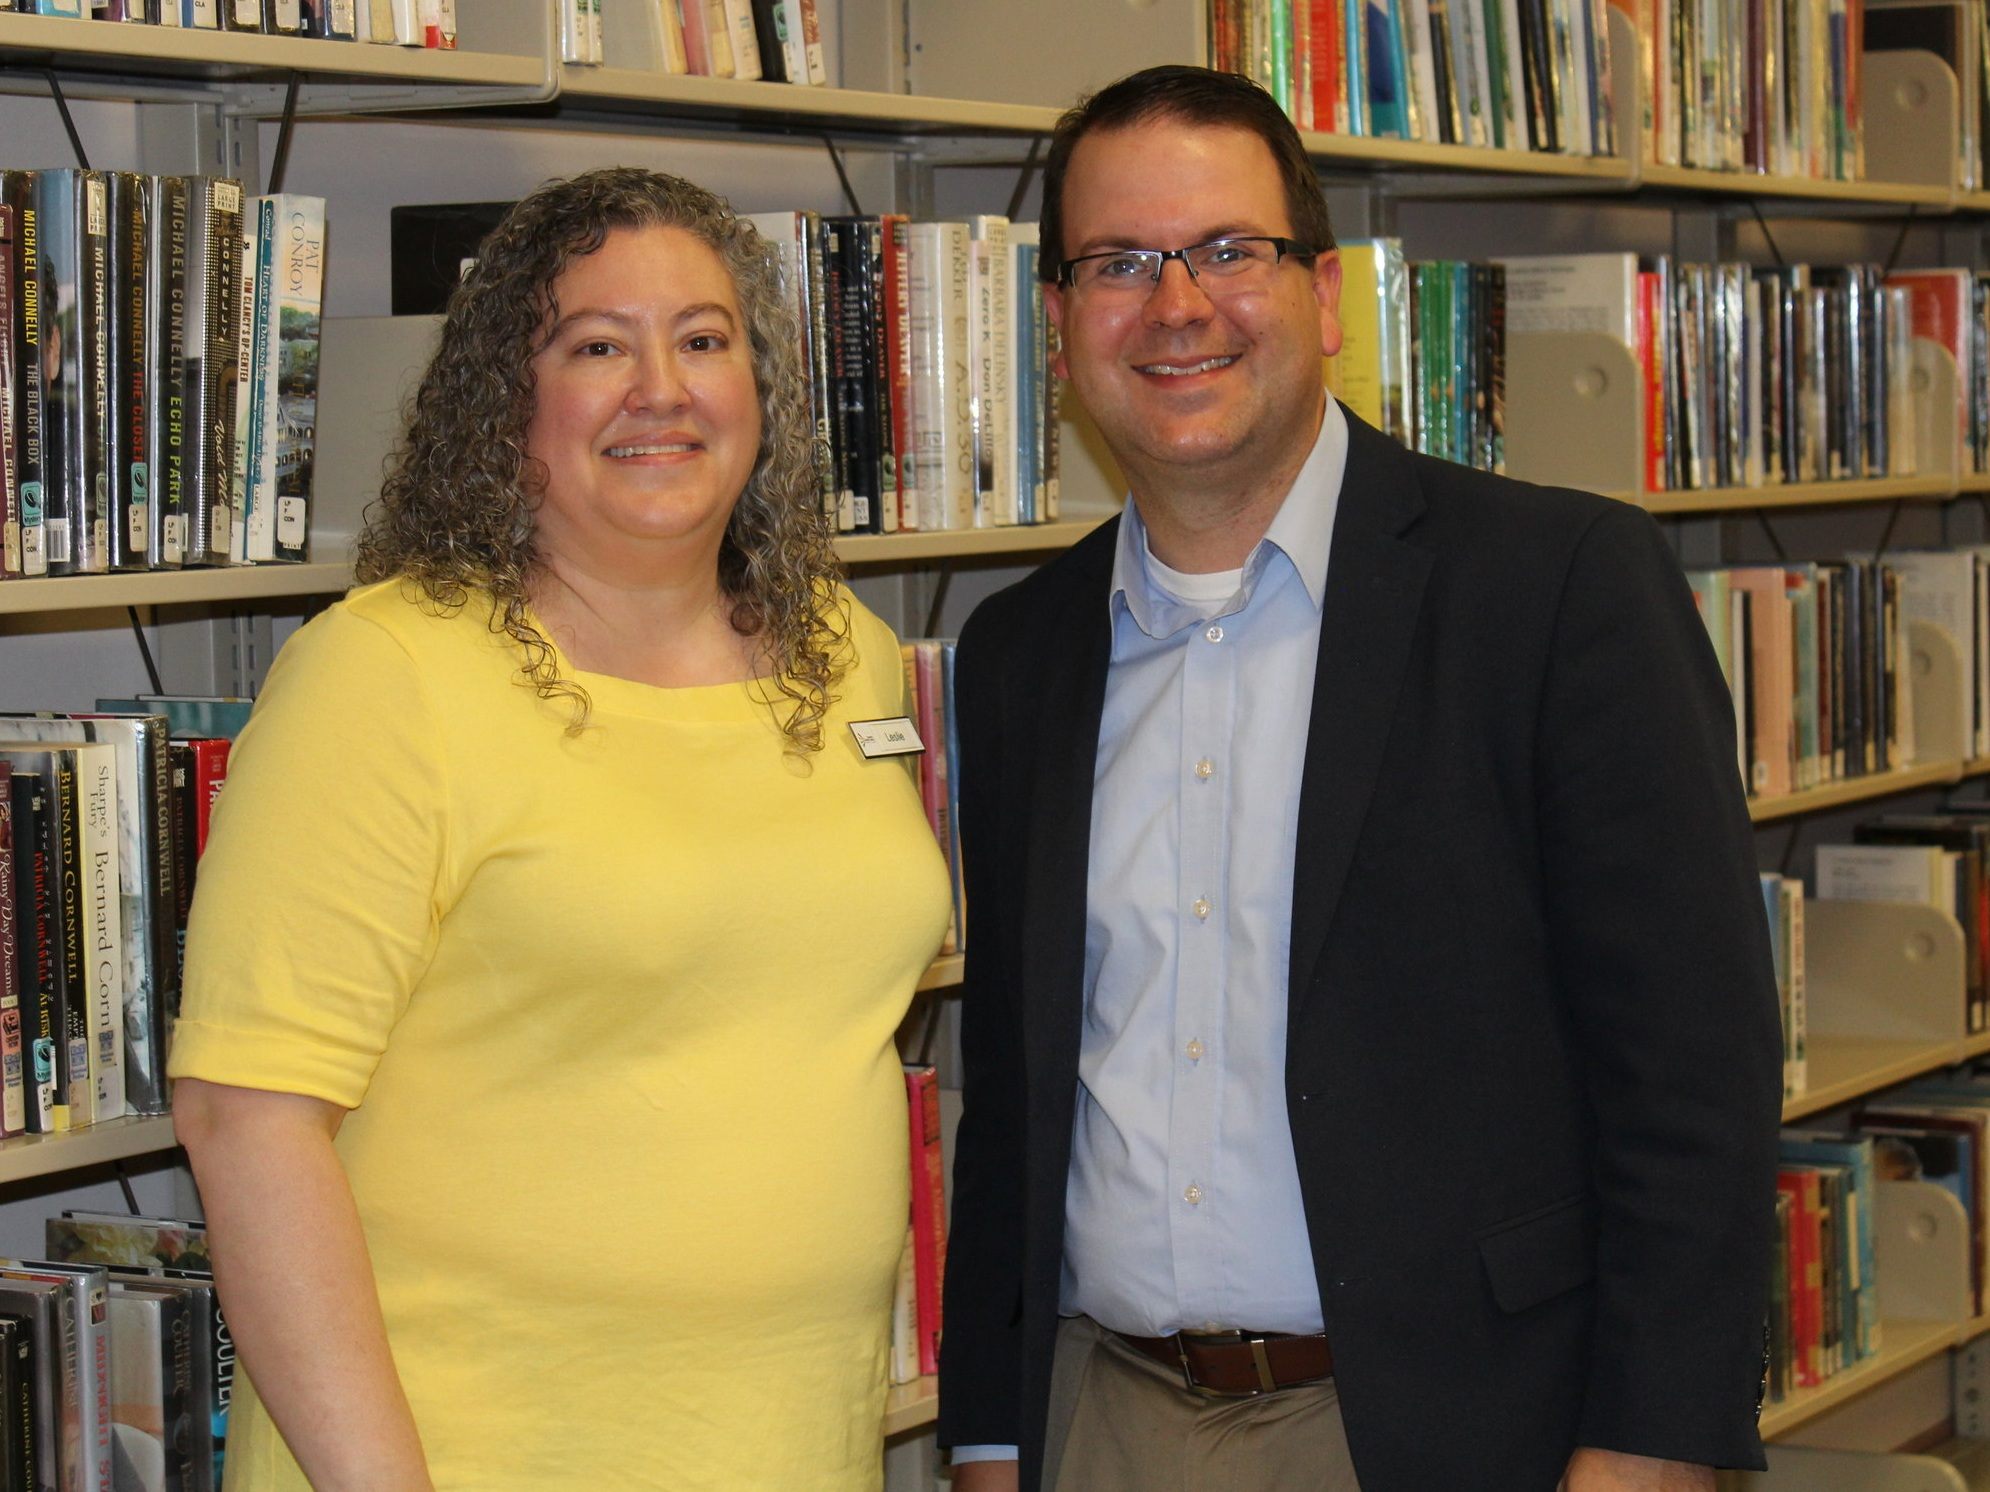 Library Director Leslie Pallotta and Pastor Tom Parkinson at the Cranberry Public Library